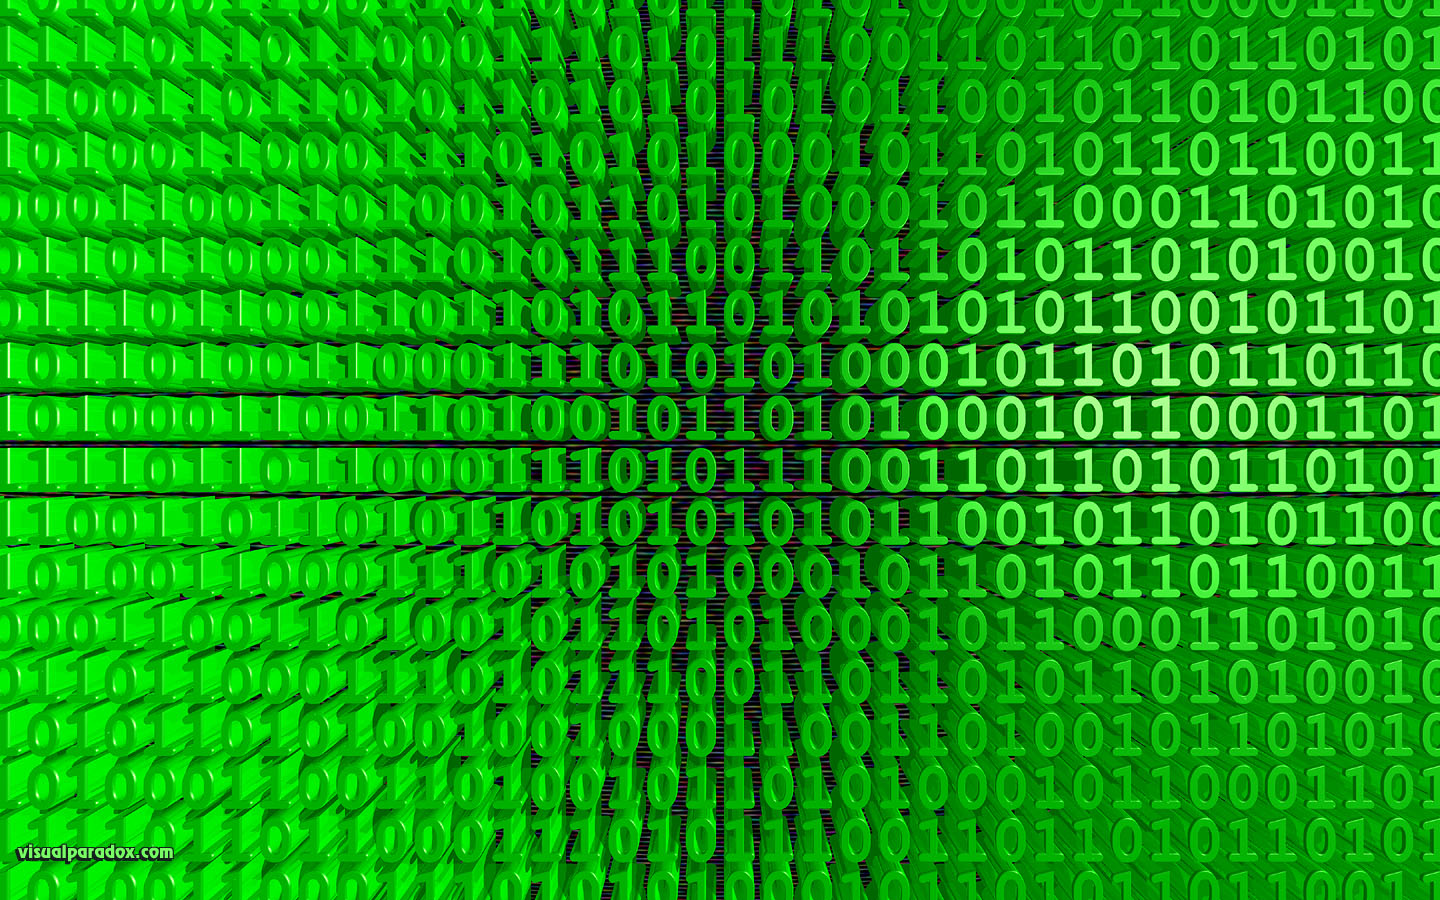 binary code wallpaper images pictures becuo